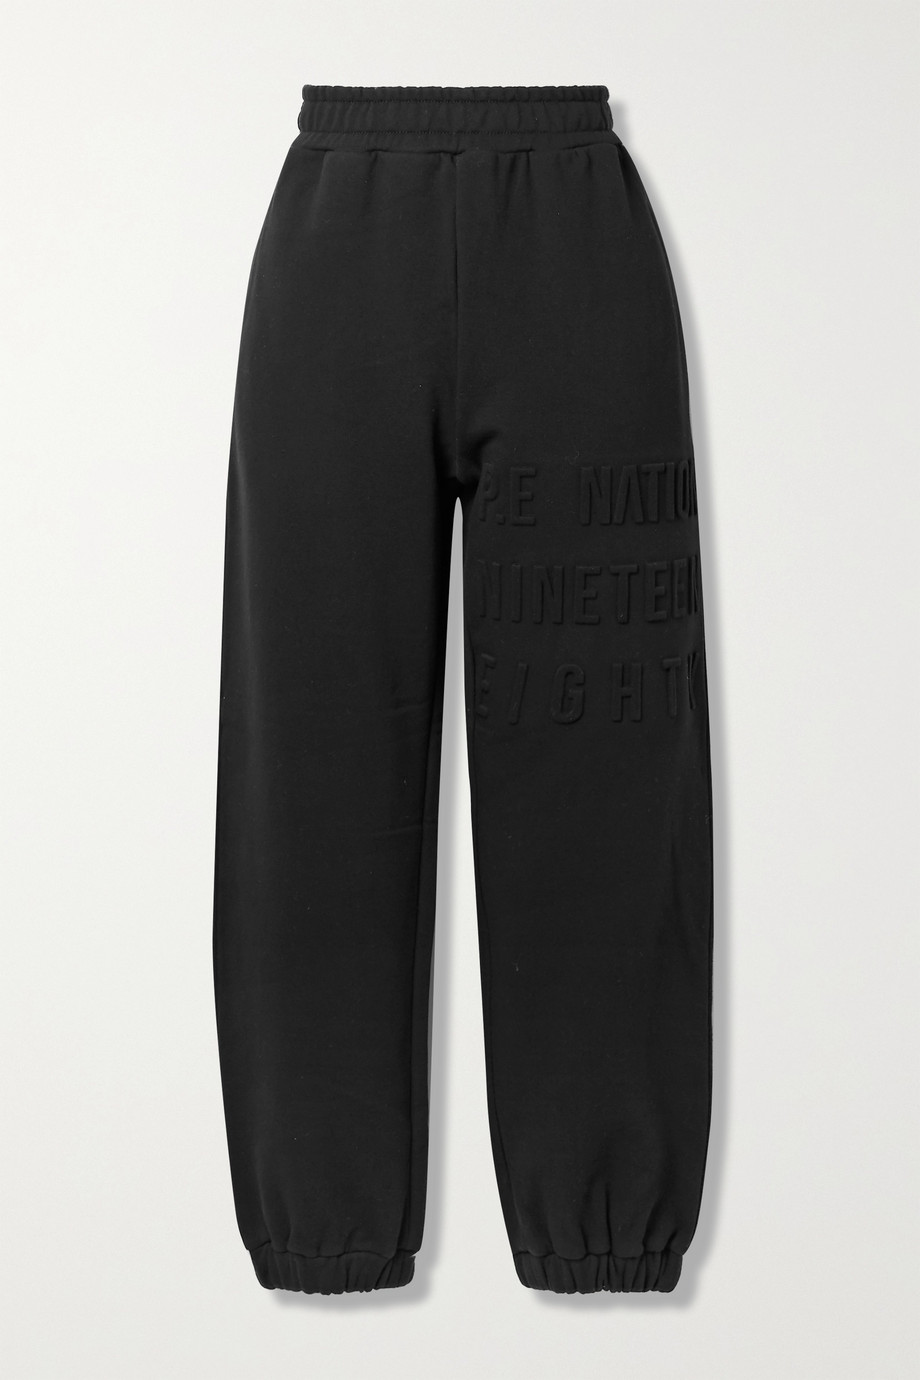 P.E NATION Power Play embossed stretch organic cotton-jersey track pants